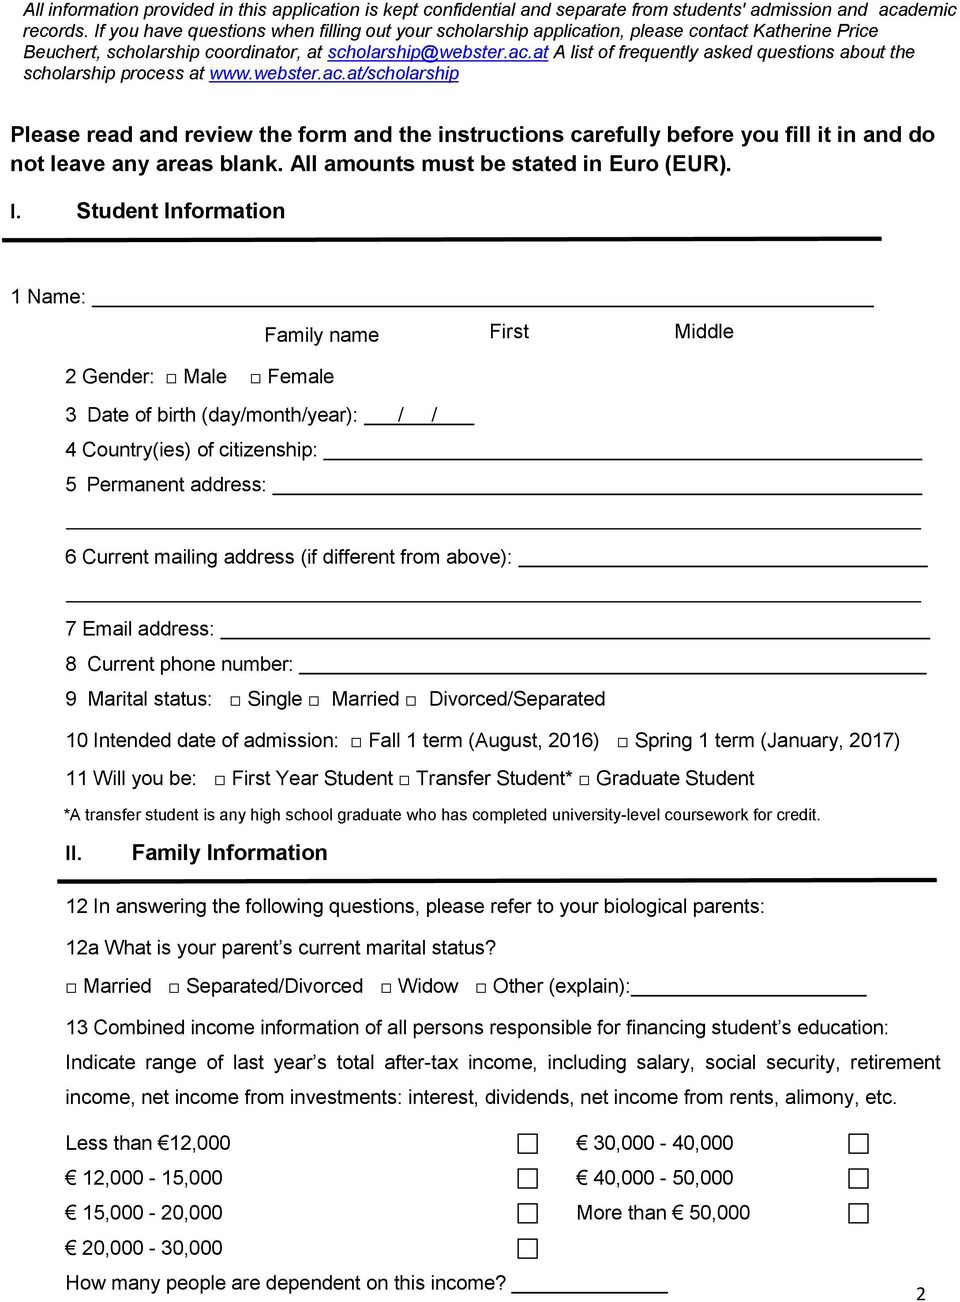 Scholarship Application 2016/ PDF